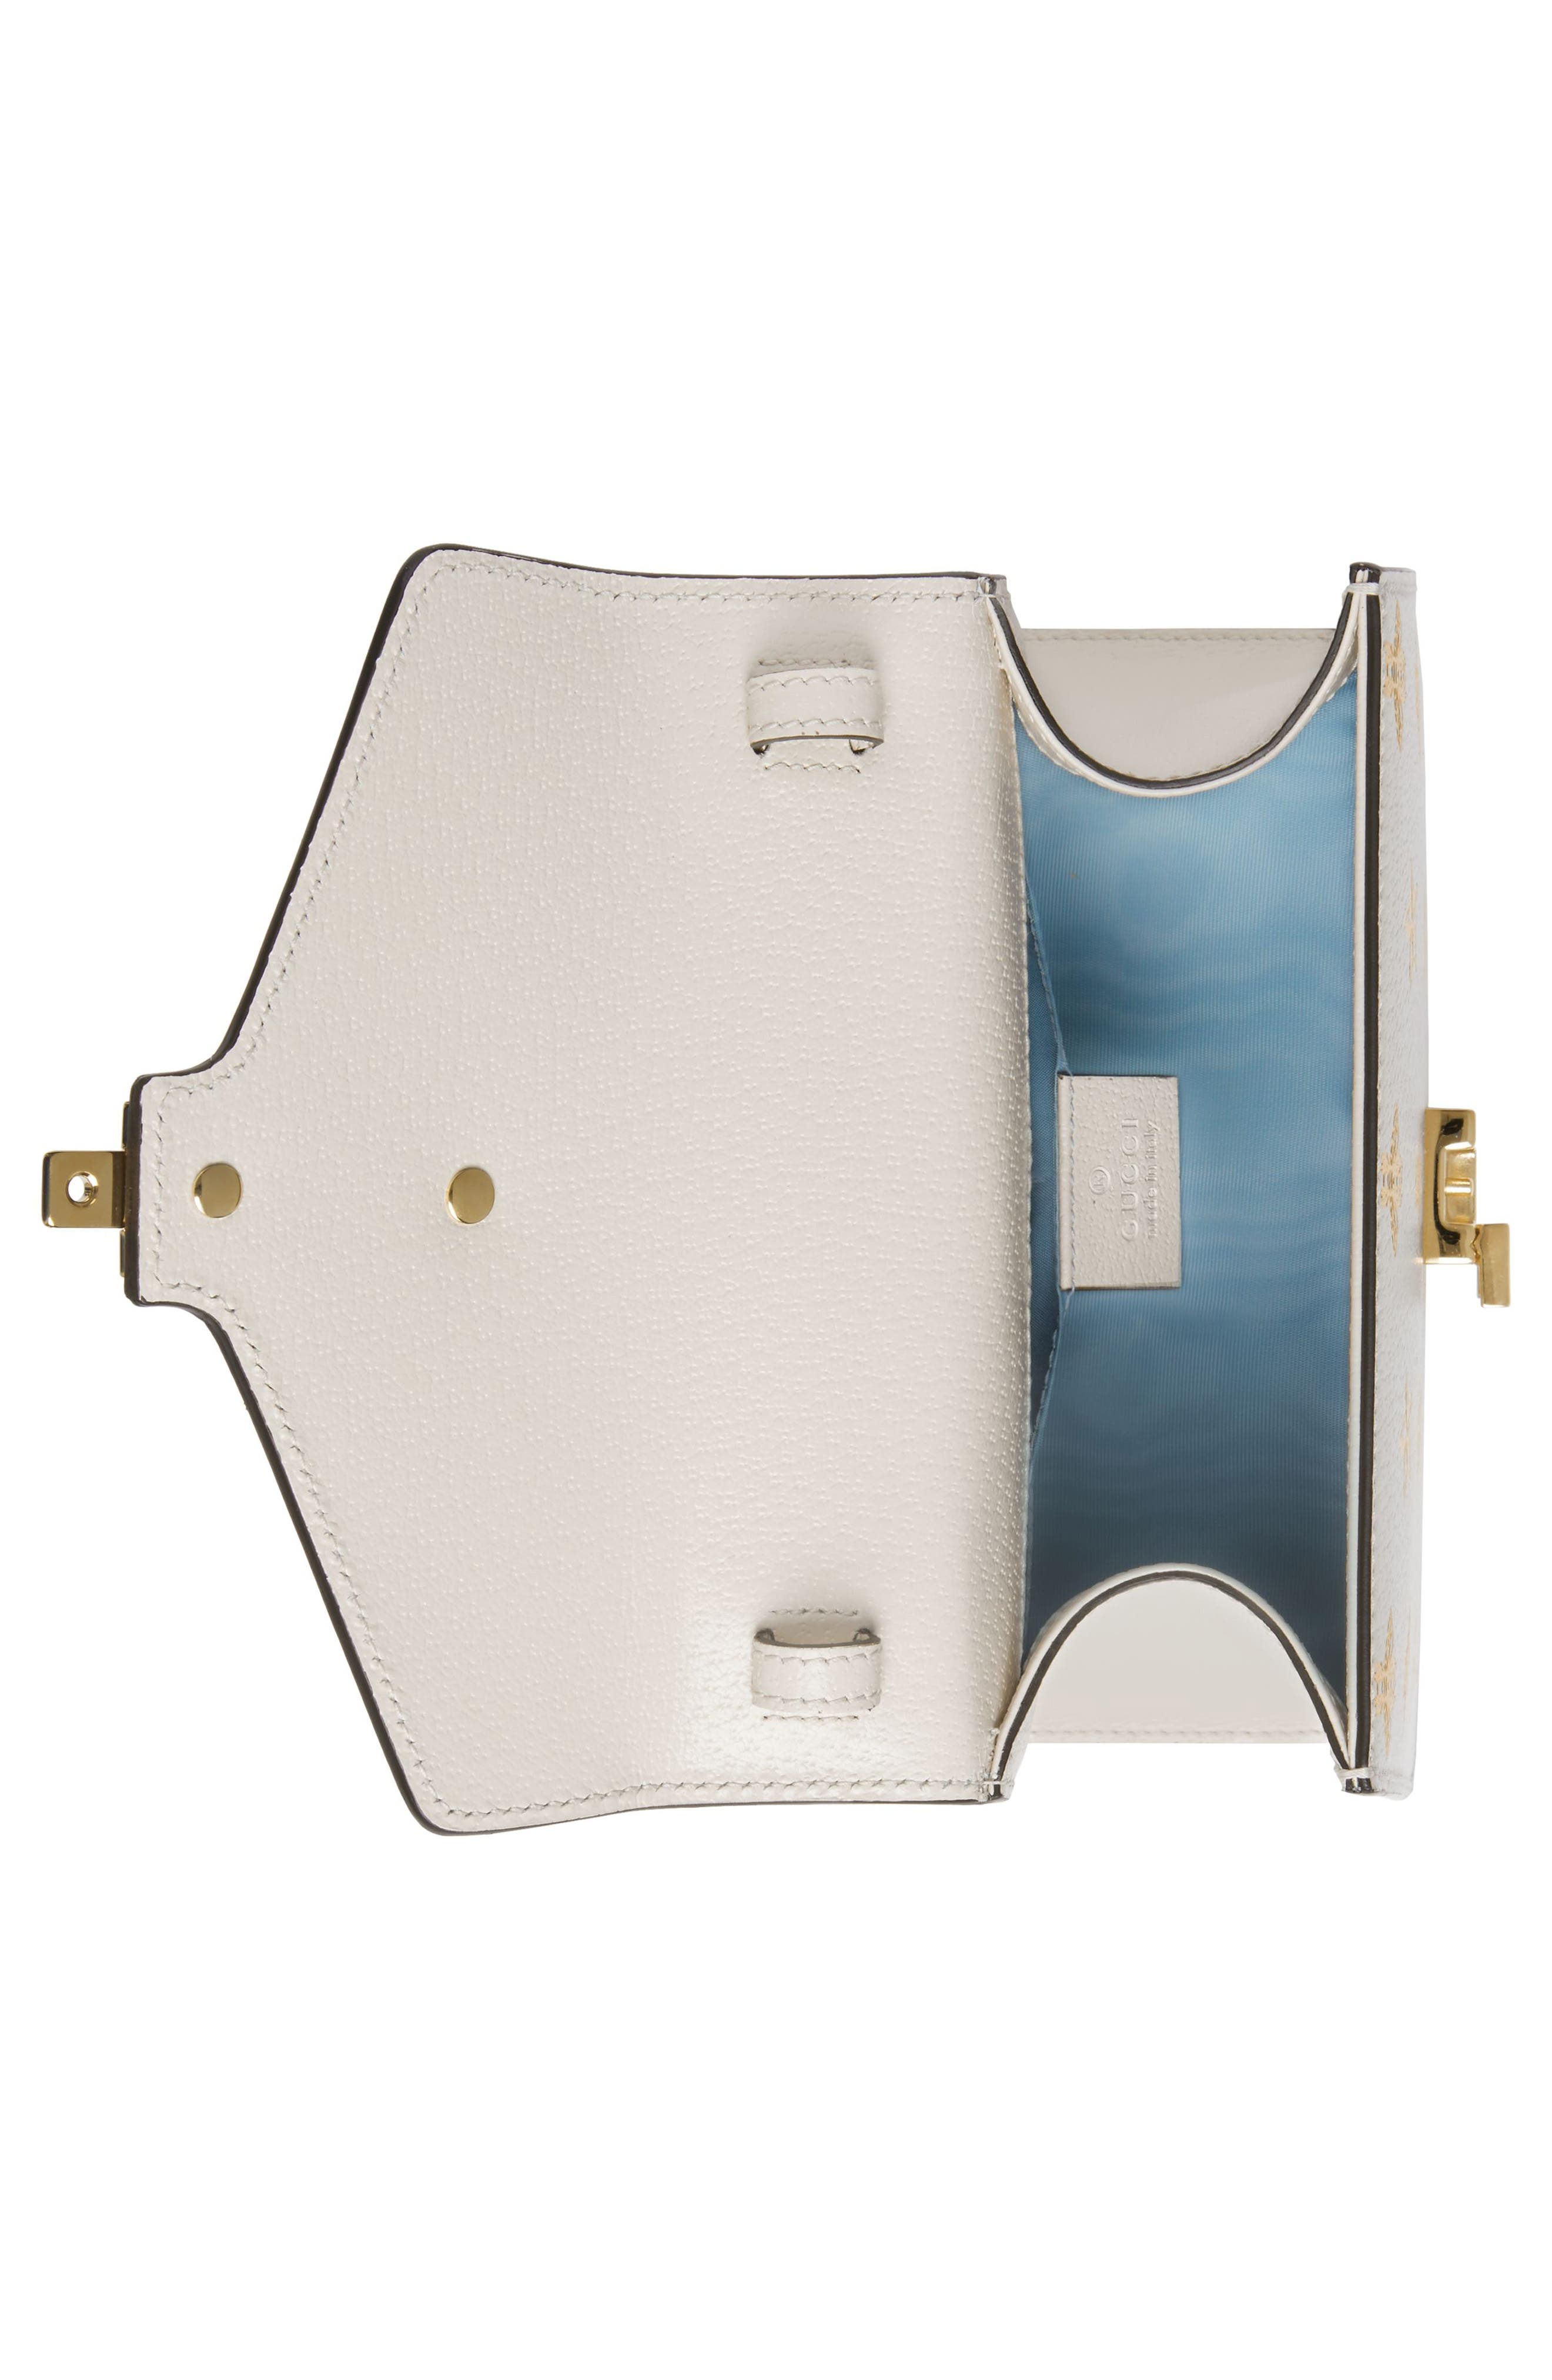 Small Sylvie Top Handle Leather Shoulder Bag,                             Alternate thumbnail 3, color,                             MYSTIC WHITE/ ORO/ BLUE/ RED